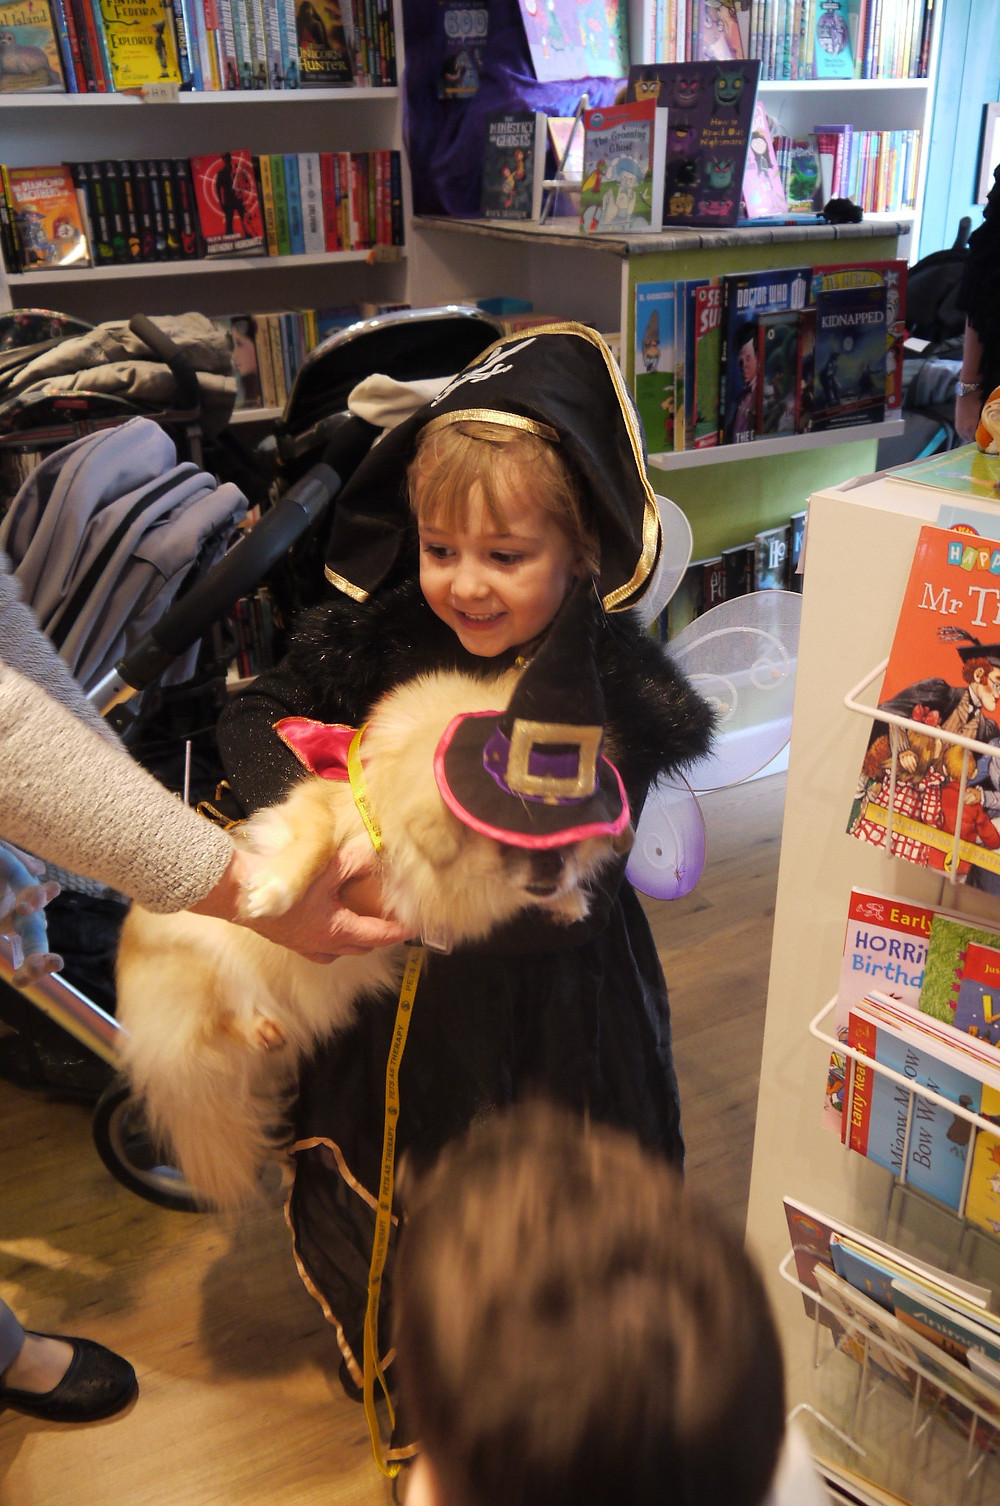 Pirate-and-Witch-Dog-e1415013725298.jpg